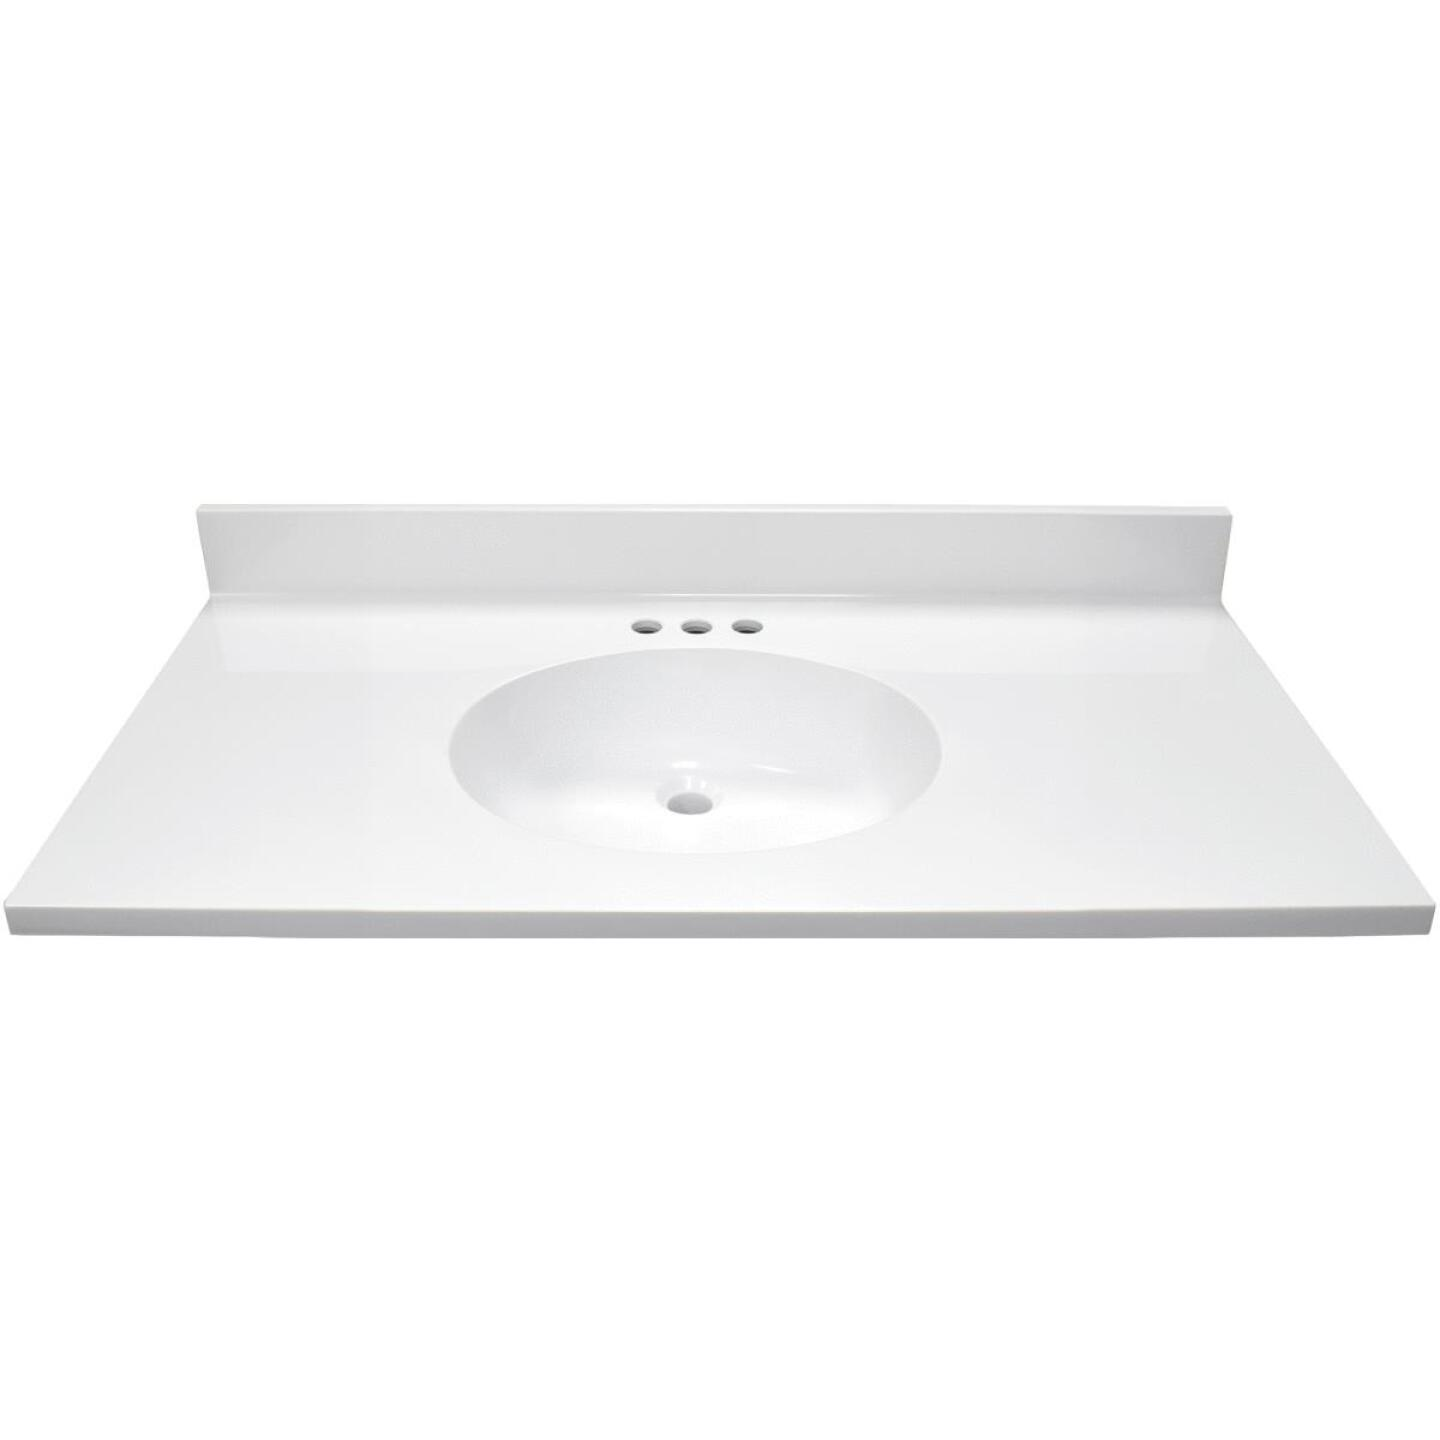 Modular Vanity Tops 37 In. W x 22 In. D Solid White Cultured Marble Vanity Top with Oval Bowl Image 2